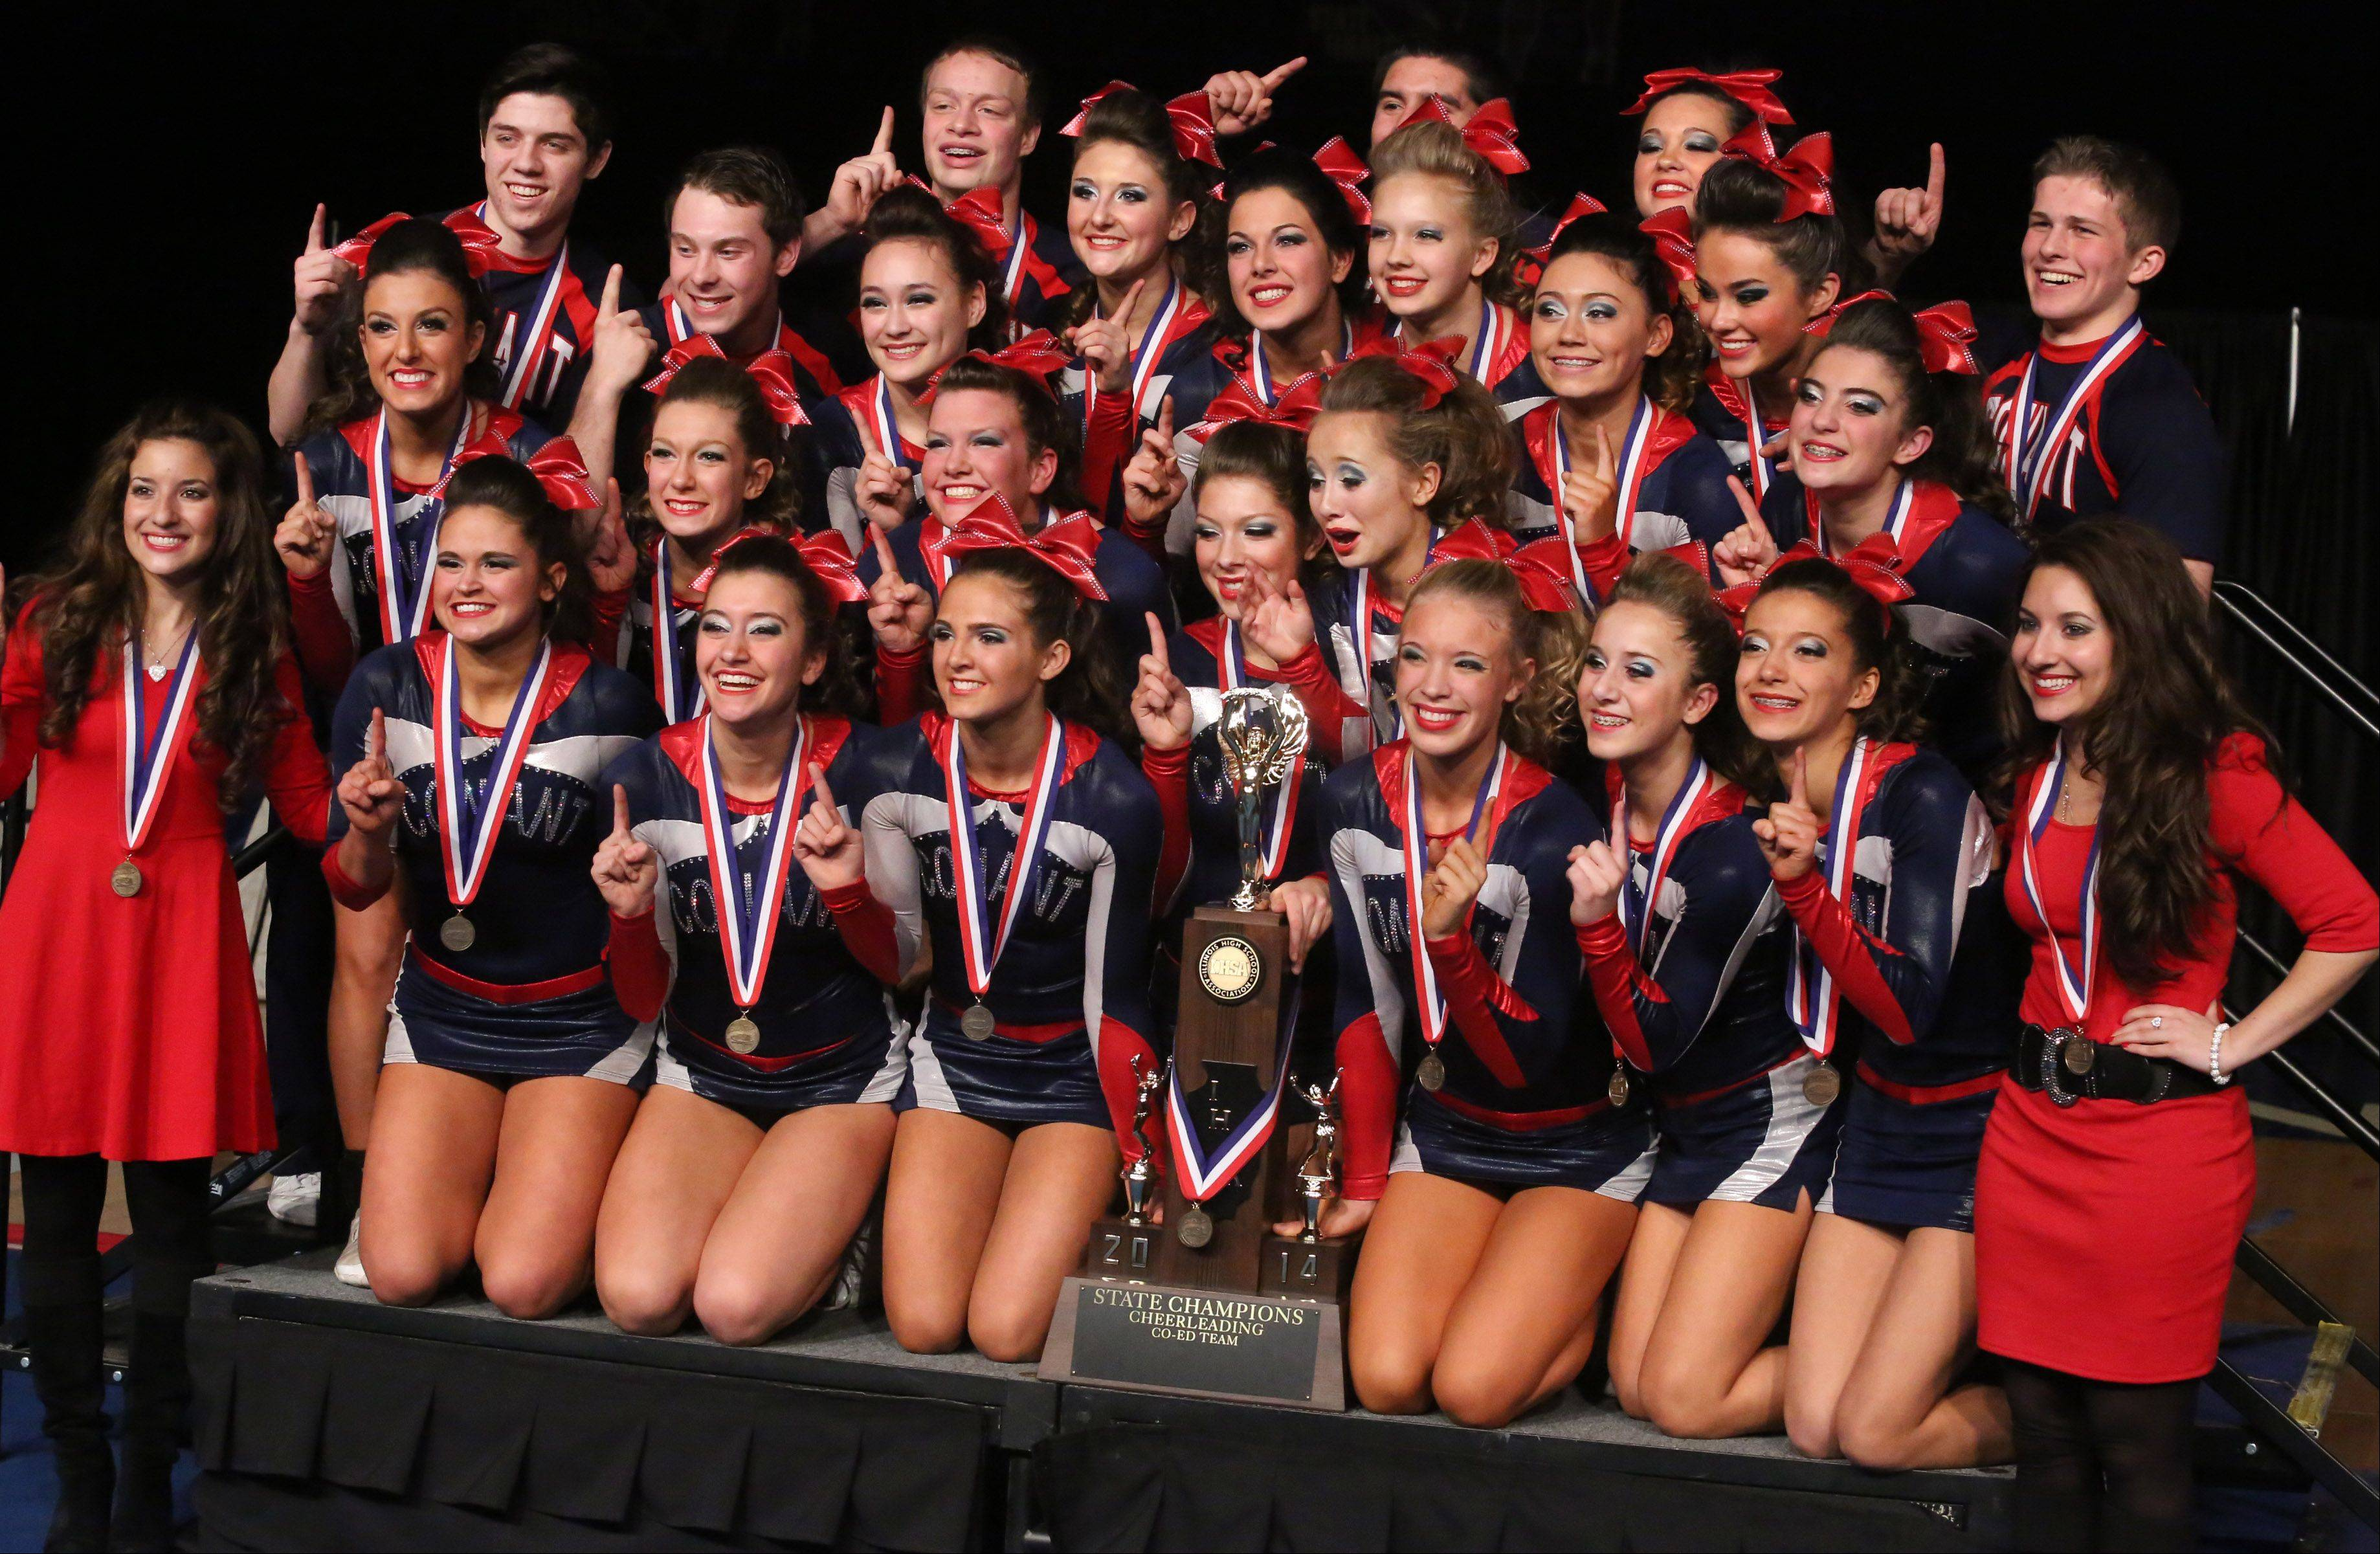 Conant cheer team with the first place in the coed team category at the IHSA state finals on Saturday in Bloomington.